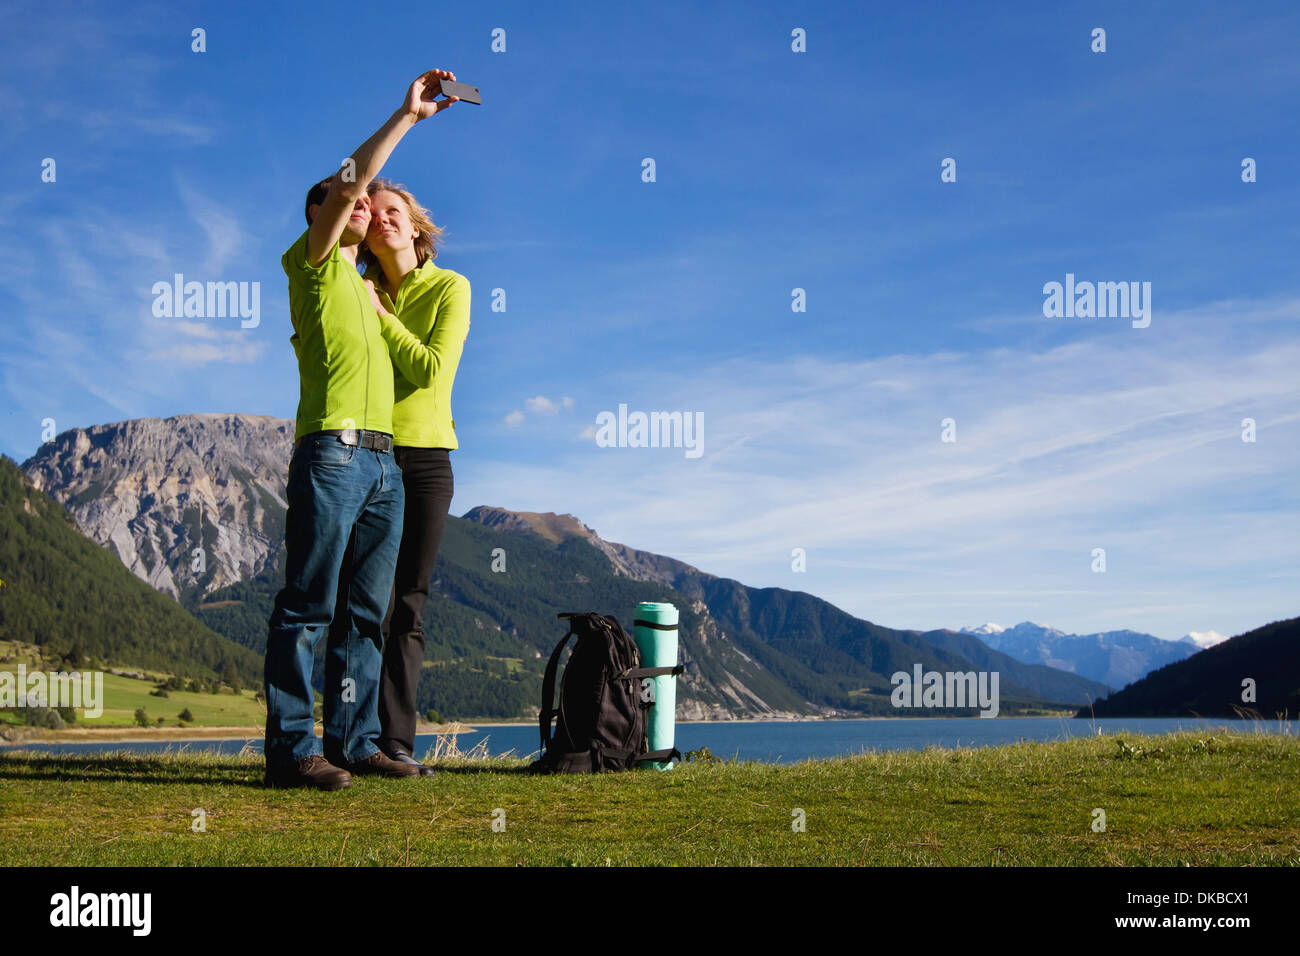 Young happy couple with backpack making photo of themselves near mountain lake - Stock Image